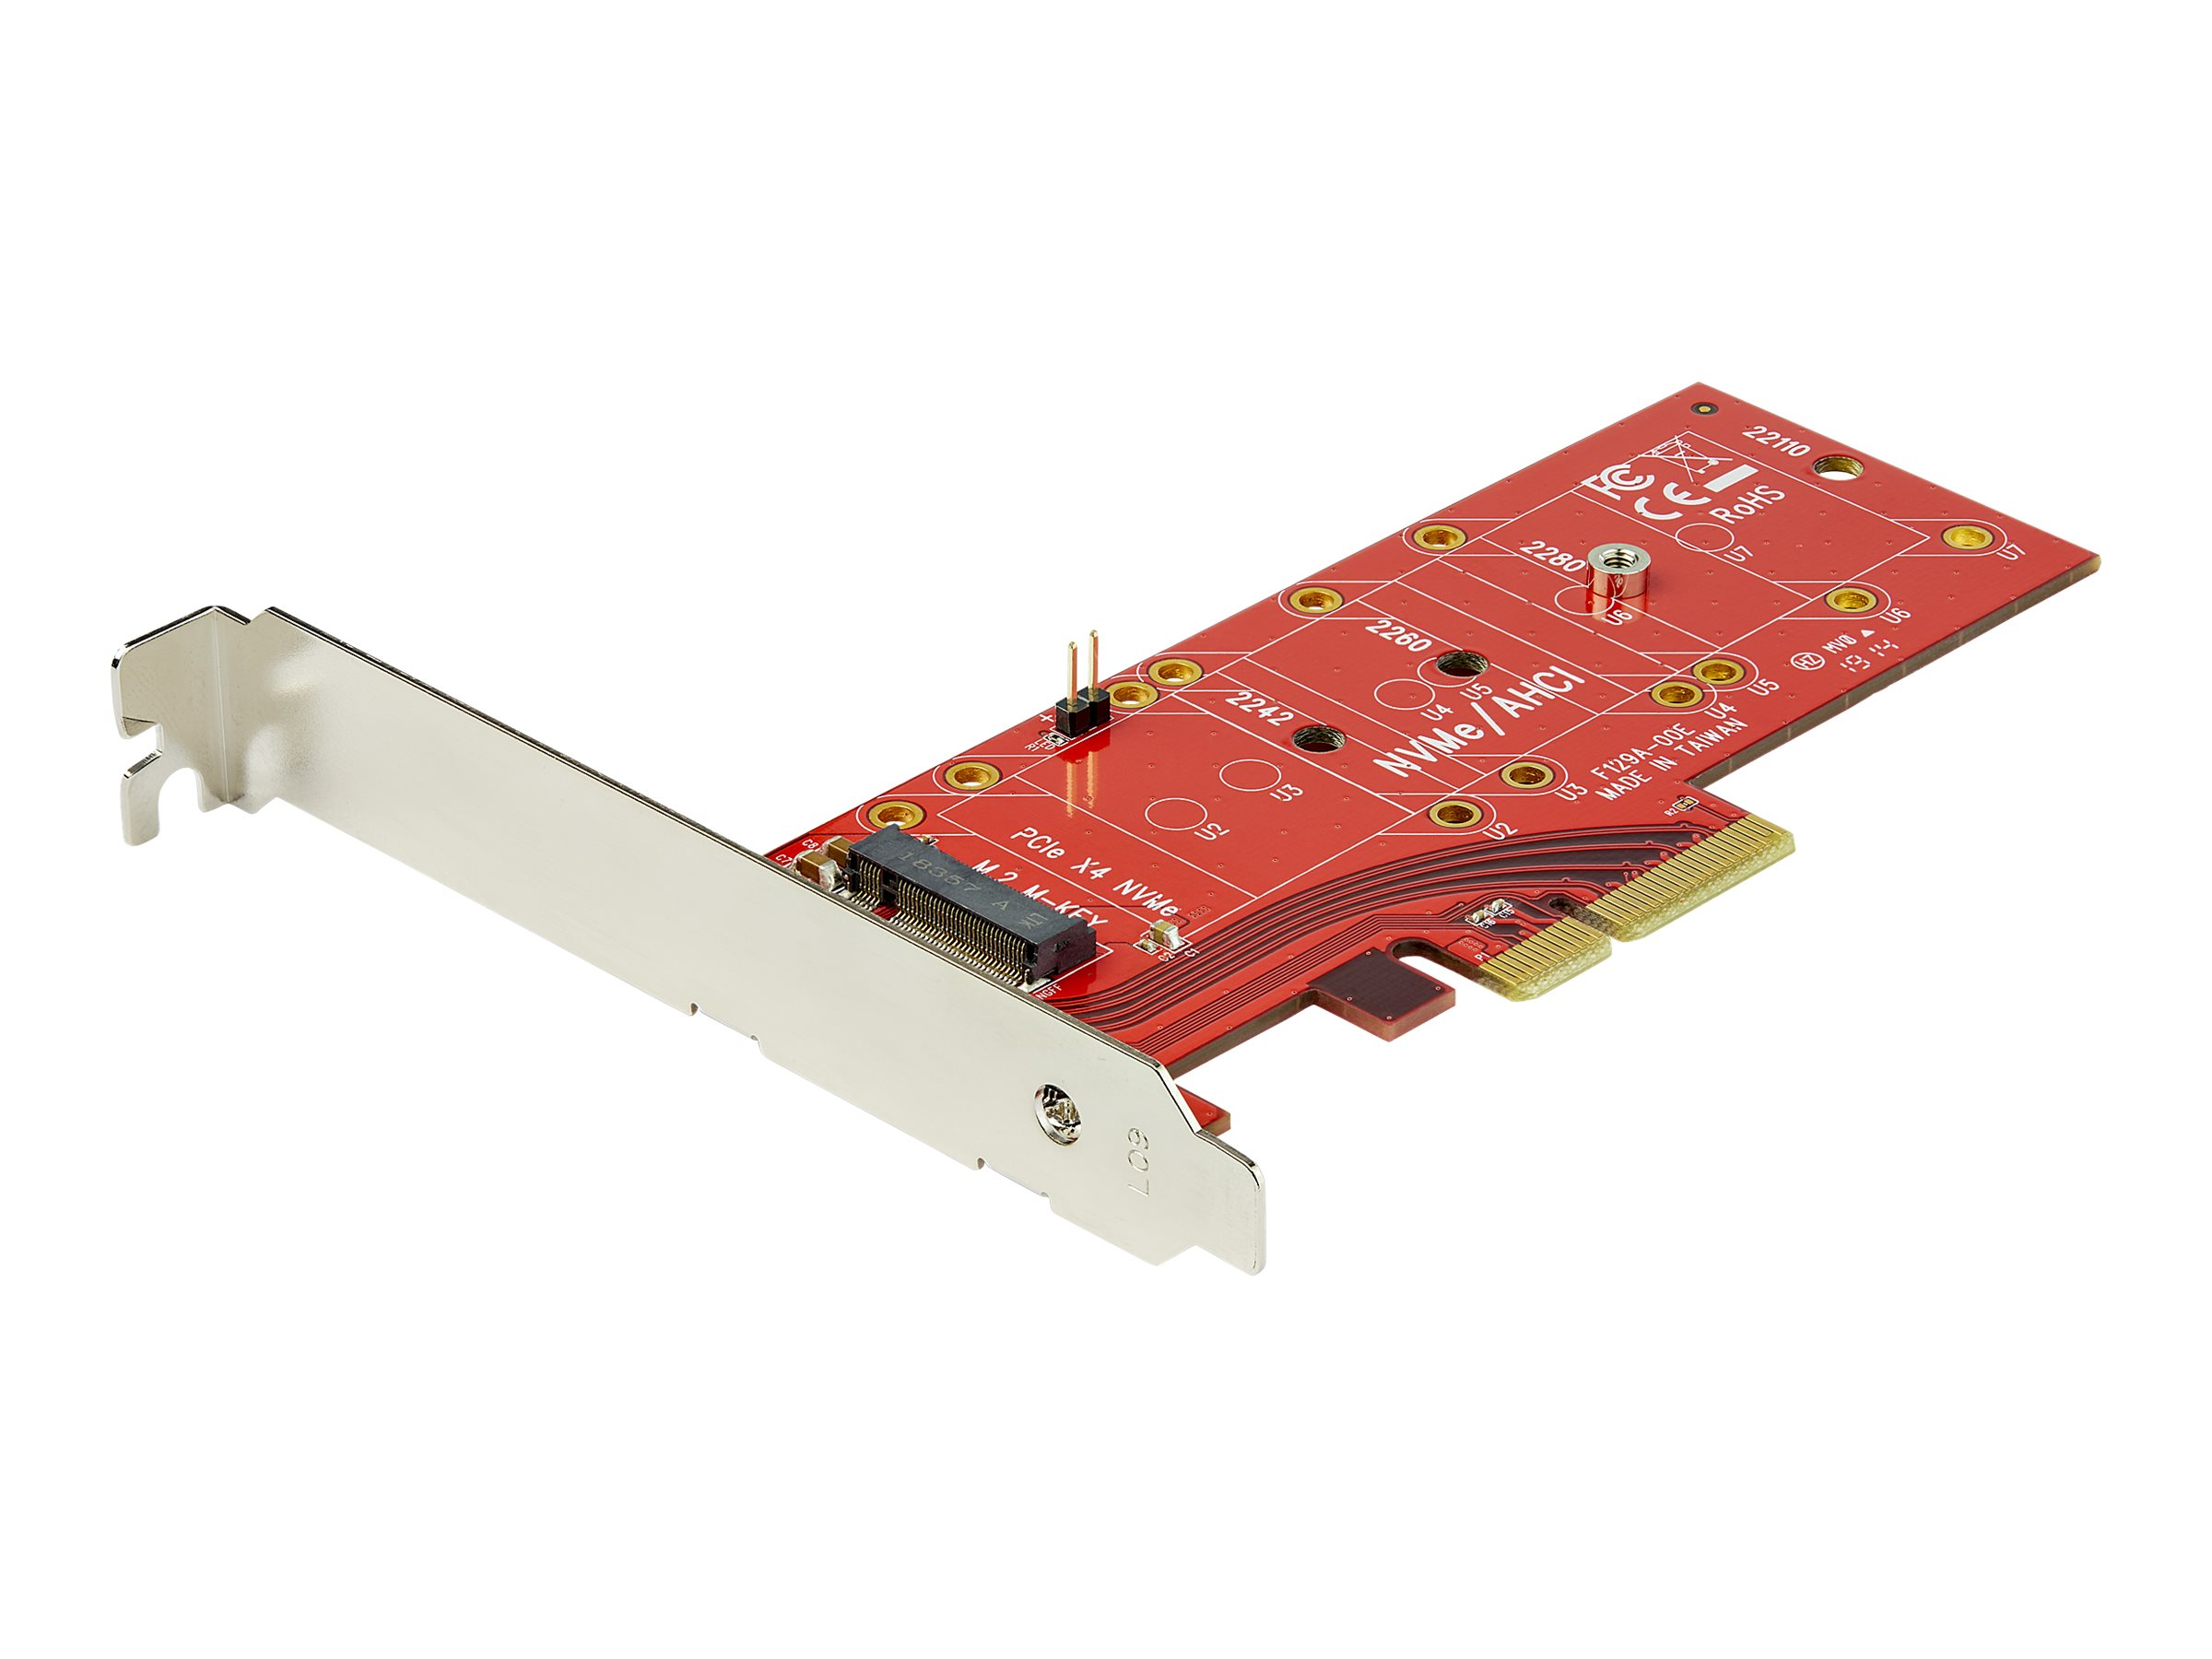 StarTech.com M2 PCIe SSD Adapter - x4 PCIe 3.0 NVMe / AHCI / NGFF / M-Key - Low Profile and Full Profile - SSD PCIe M.2…